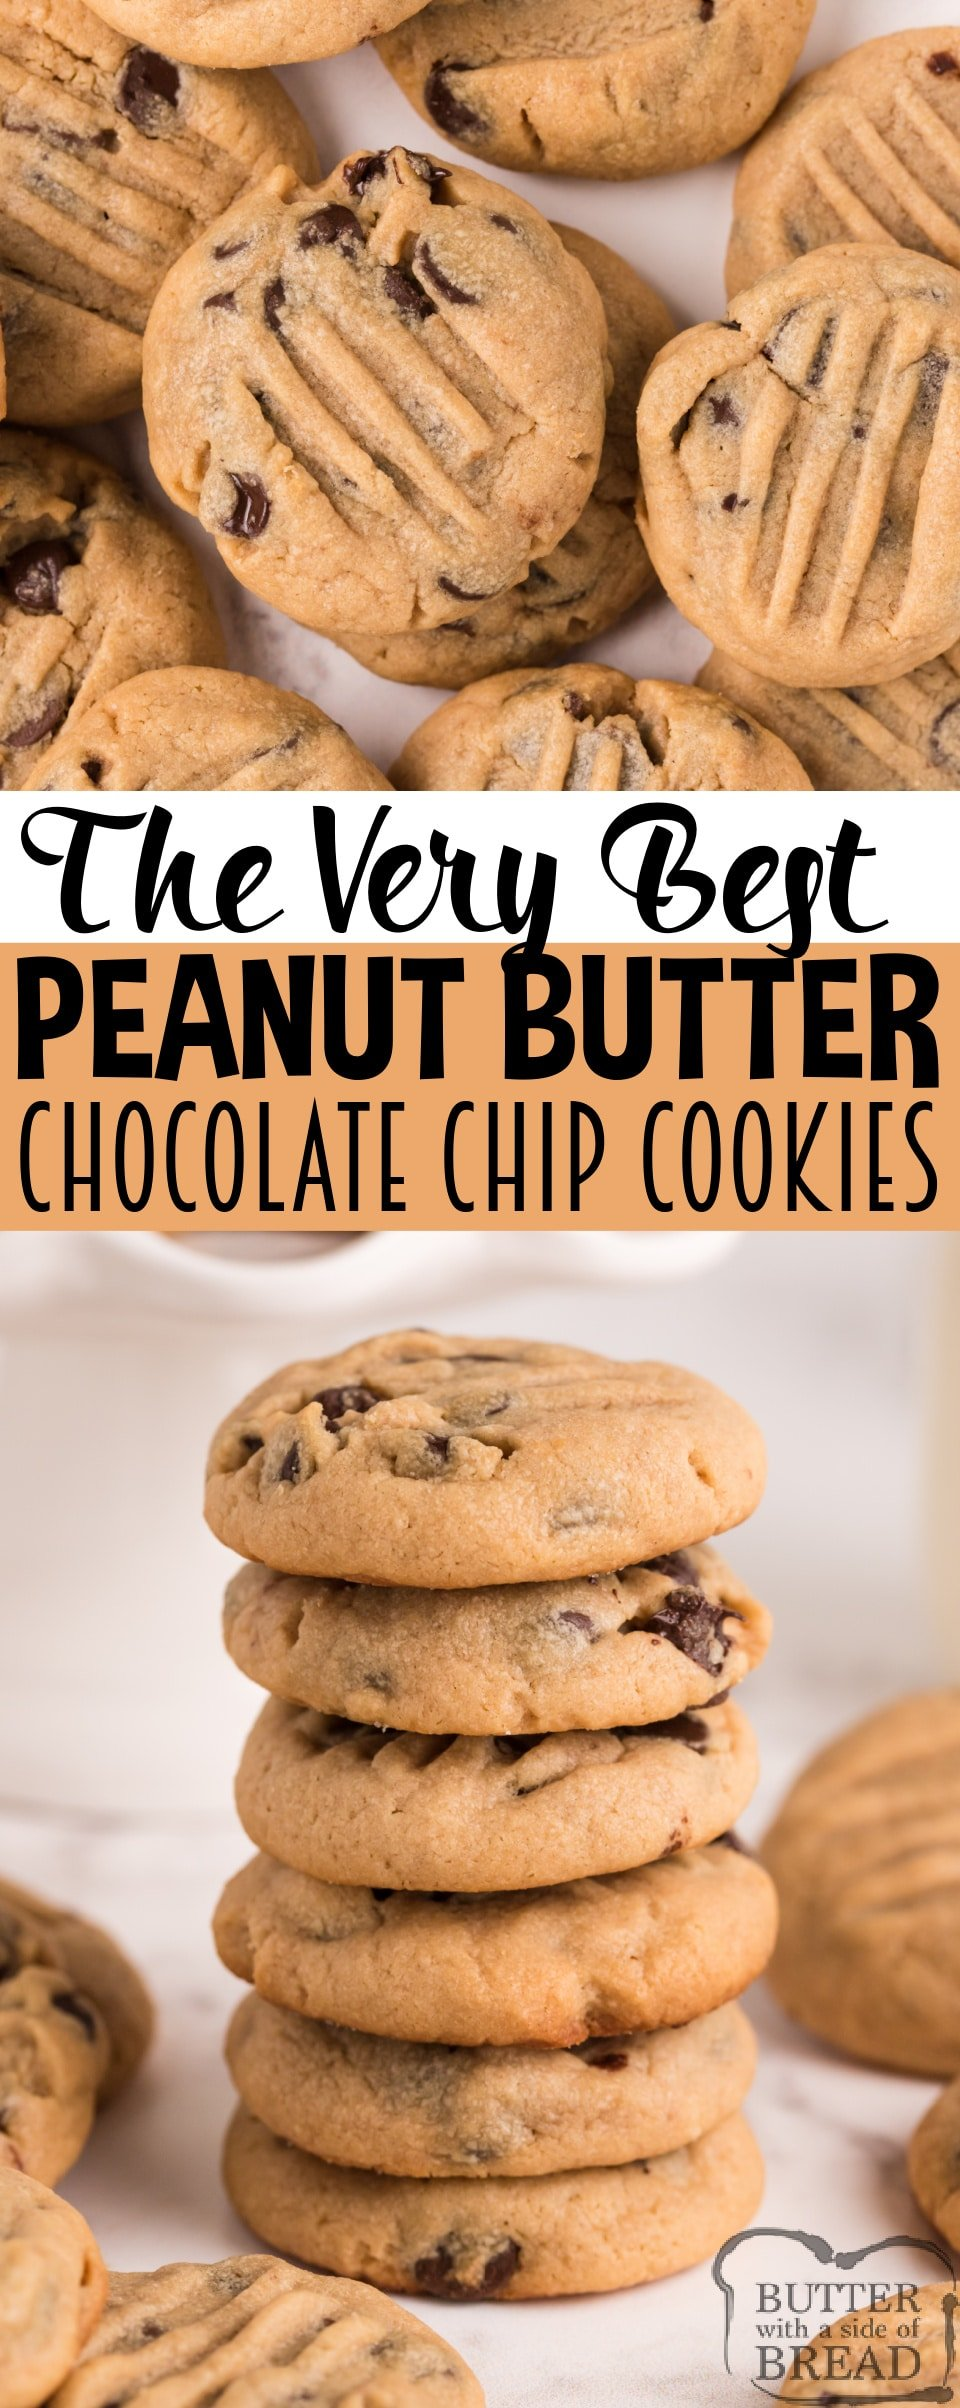 Peanut Butter Chocolate Chip Cookies are soft, chewy, and they turn out perfect every time! Start with an amazing peanut butter cookie recipe and add chocolate chips to take these cookies to the next level!